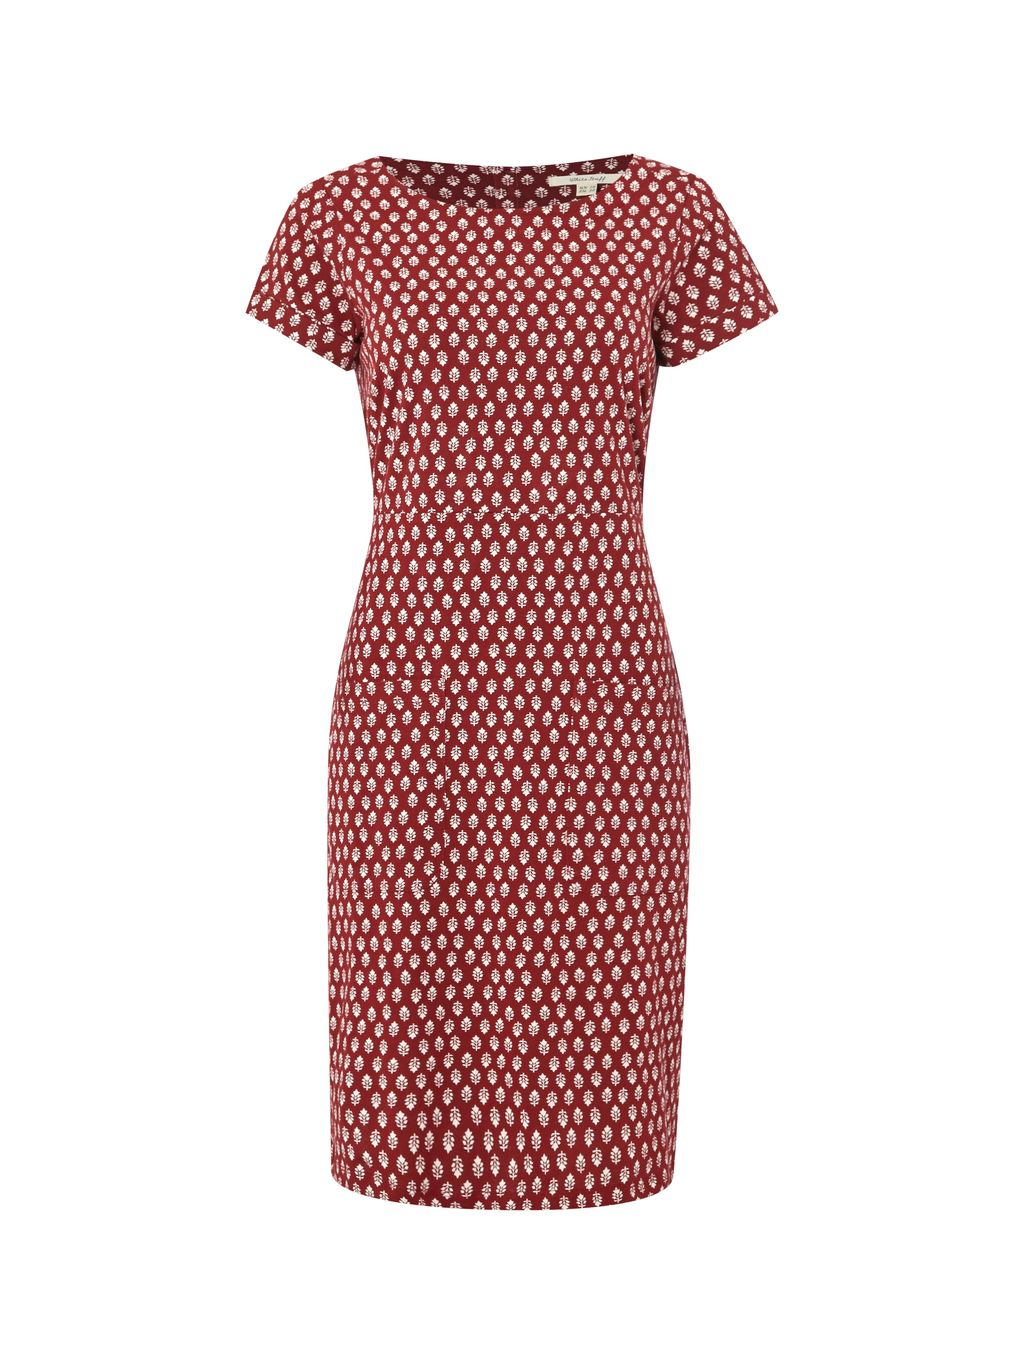 Suzanna Jersey Dress, Red - style: shift; neckline: round neck; fit: tailored/fitted; secondary colour: white; predominant colour: burgundy; occasions: casual; length: on the knee; fibres: cotton - 100%; sleeve length: short sleeve; sleeve style: standard; texture group: cotton feel fabrics; pattern type: fabric; pattern: patterned/print; season: s/s 2016; wardrobe: highlight